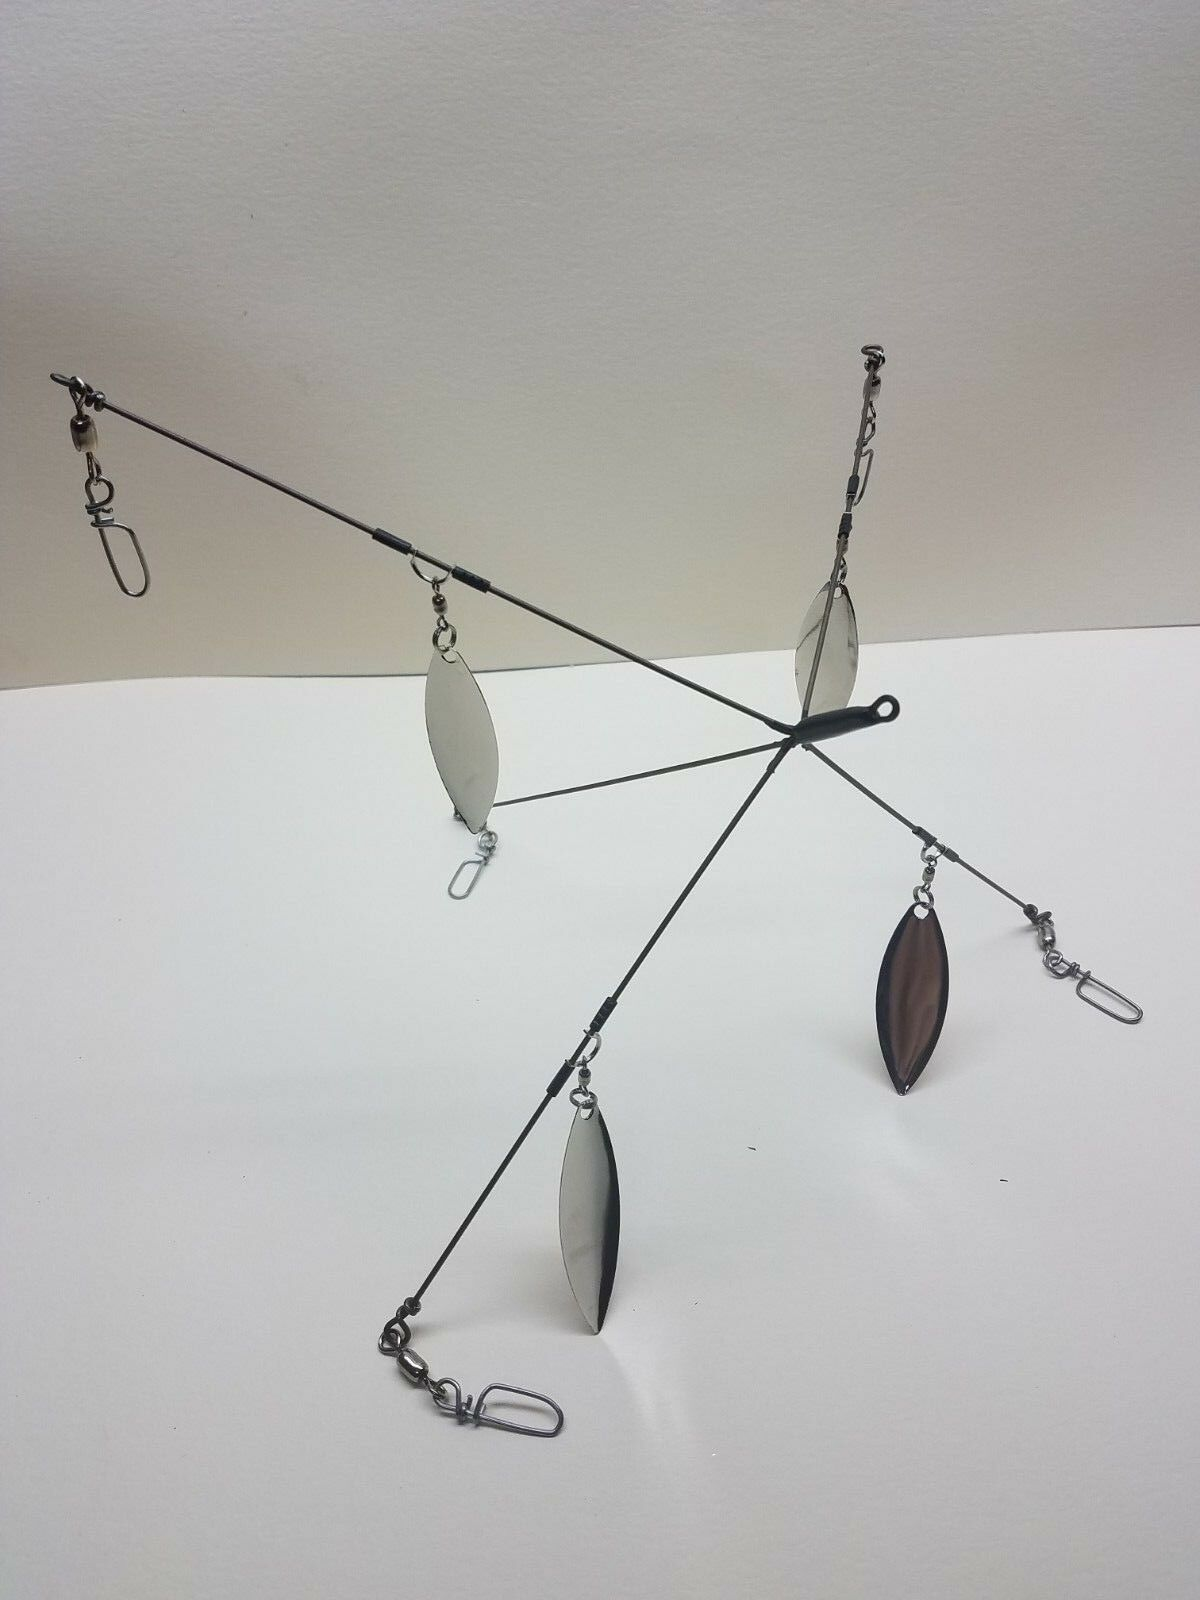 KC School'em 8-HDB-5CL Striper  Bass Umbrella Rig  5 Arm 4 Blade  fast delivery and free shipping on all orders